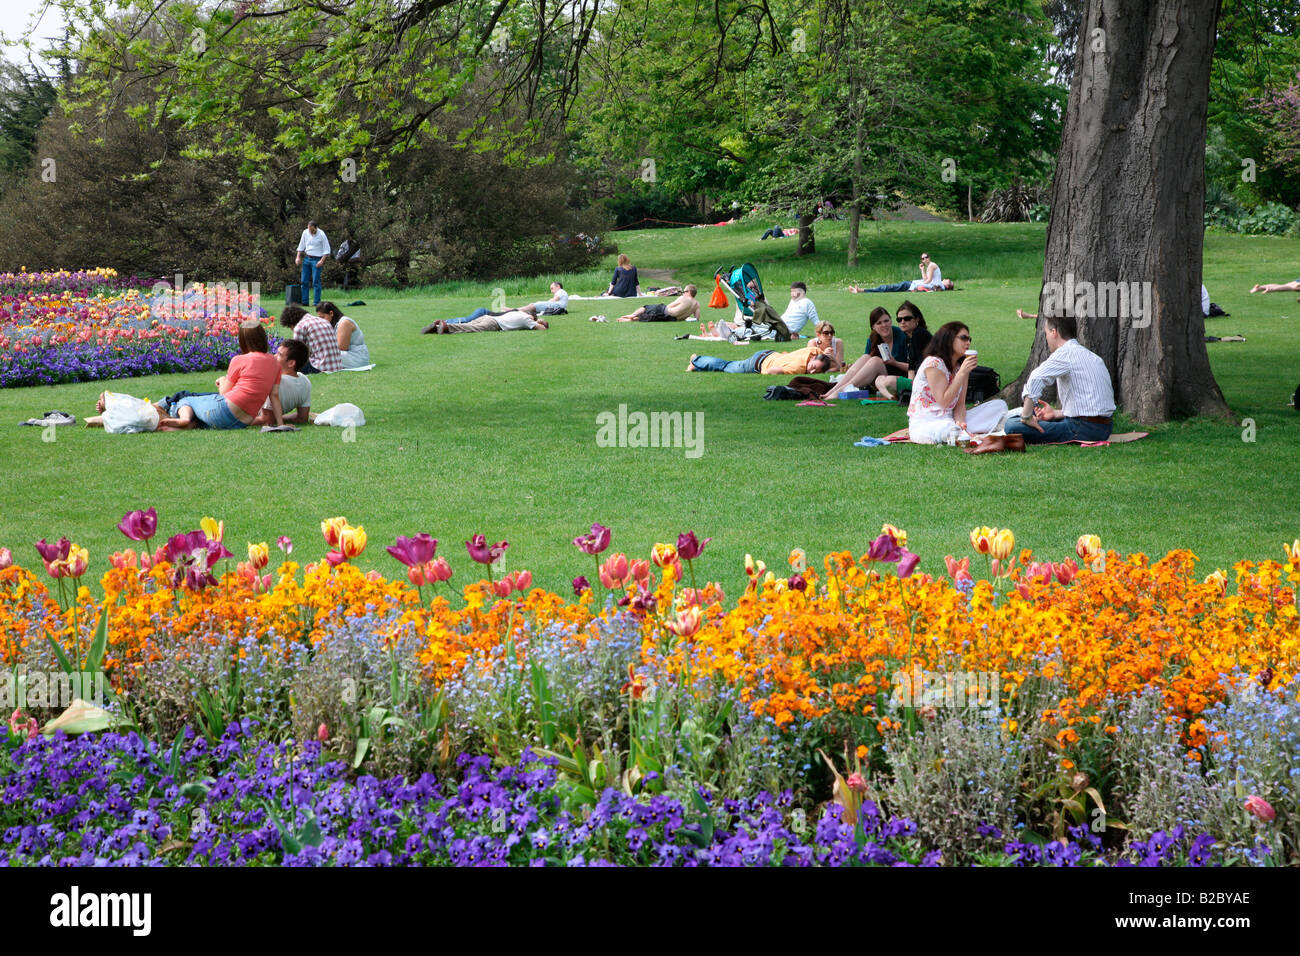 Leisure activities in Hyde Park, London, England, Great Britain, Europe - Stock Image